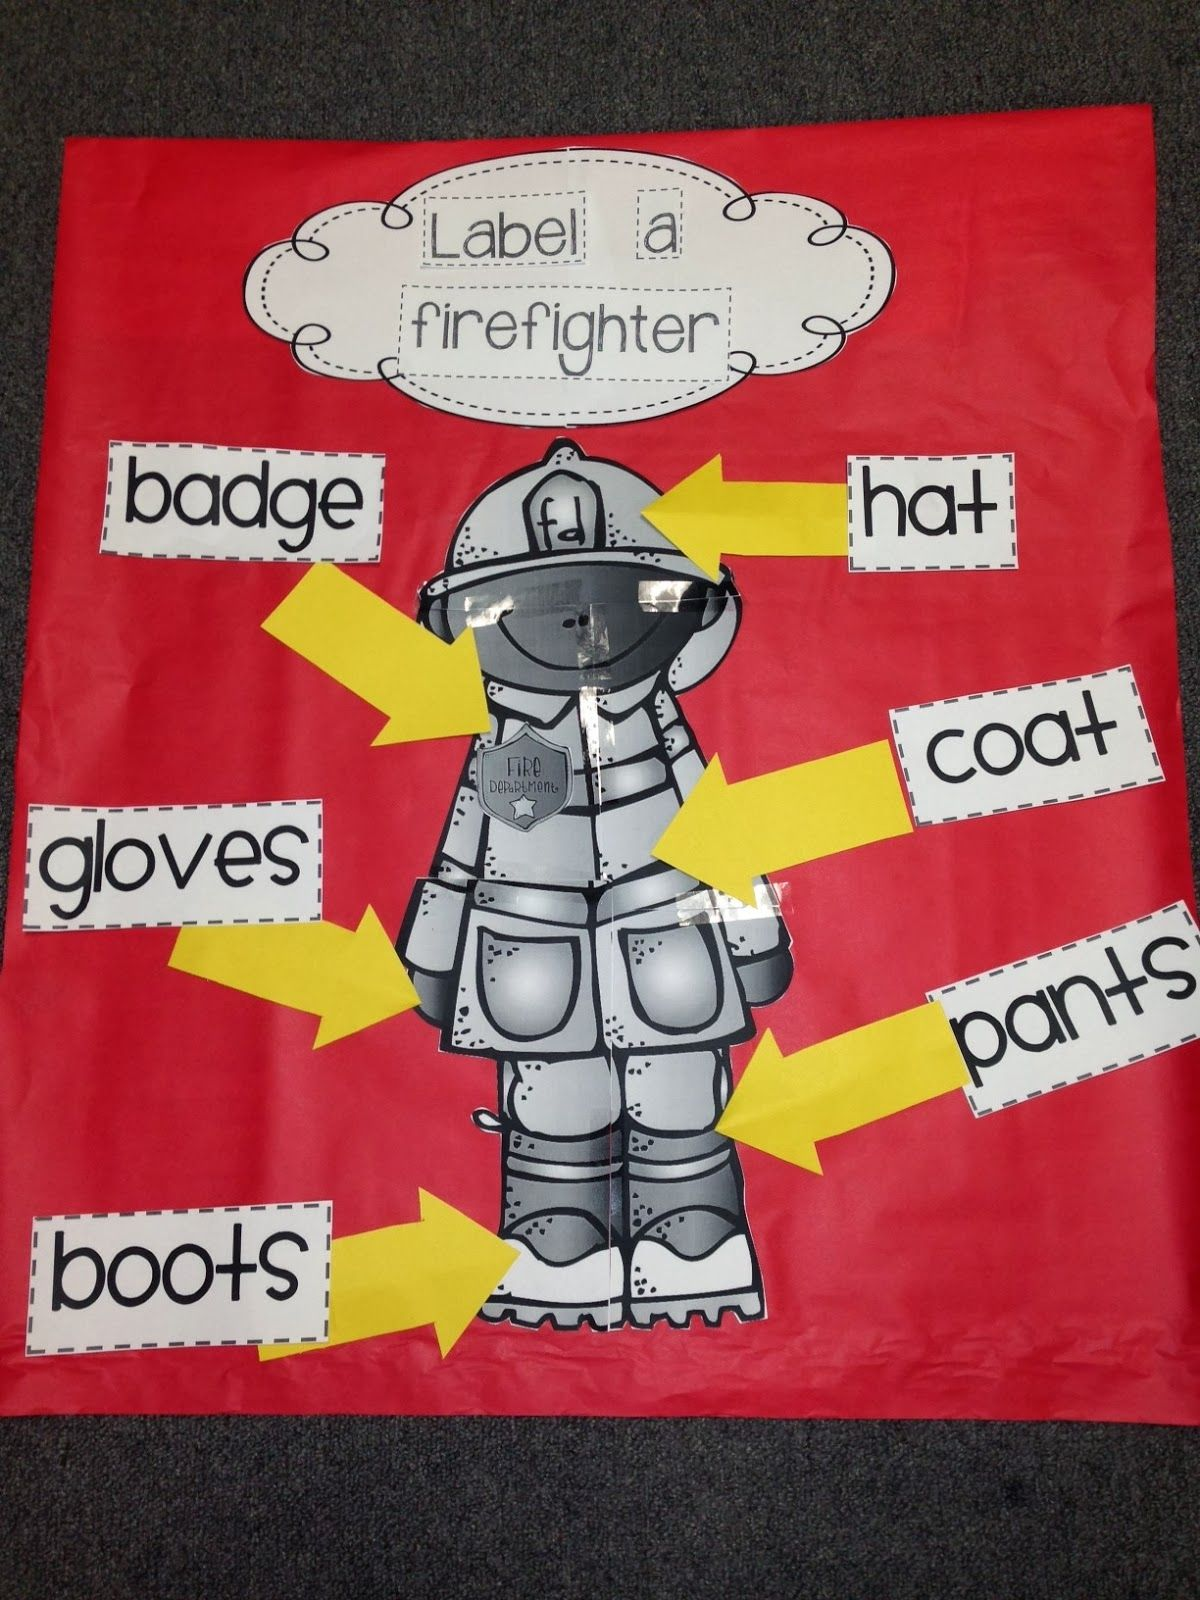 firefighter preschool quot label a firefighter quot activity from chalk talk a 706